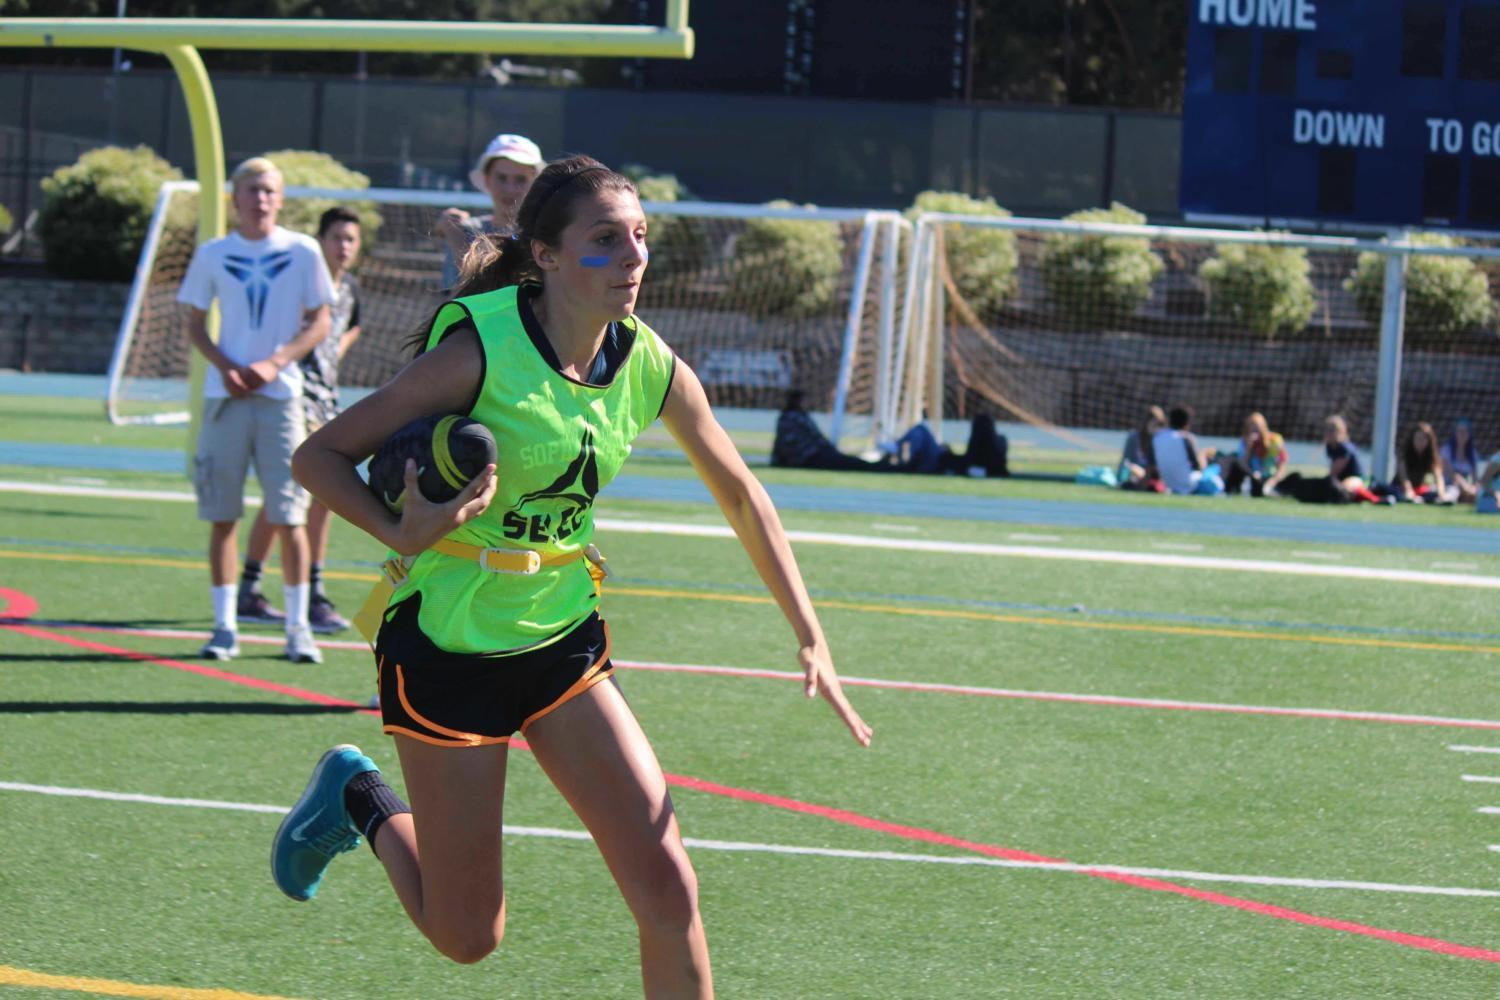 Emma Castro runs the ball down the field in one of last year's powder puff games. In previous years, powder puff took place at lunch during homecoming week.